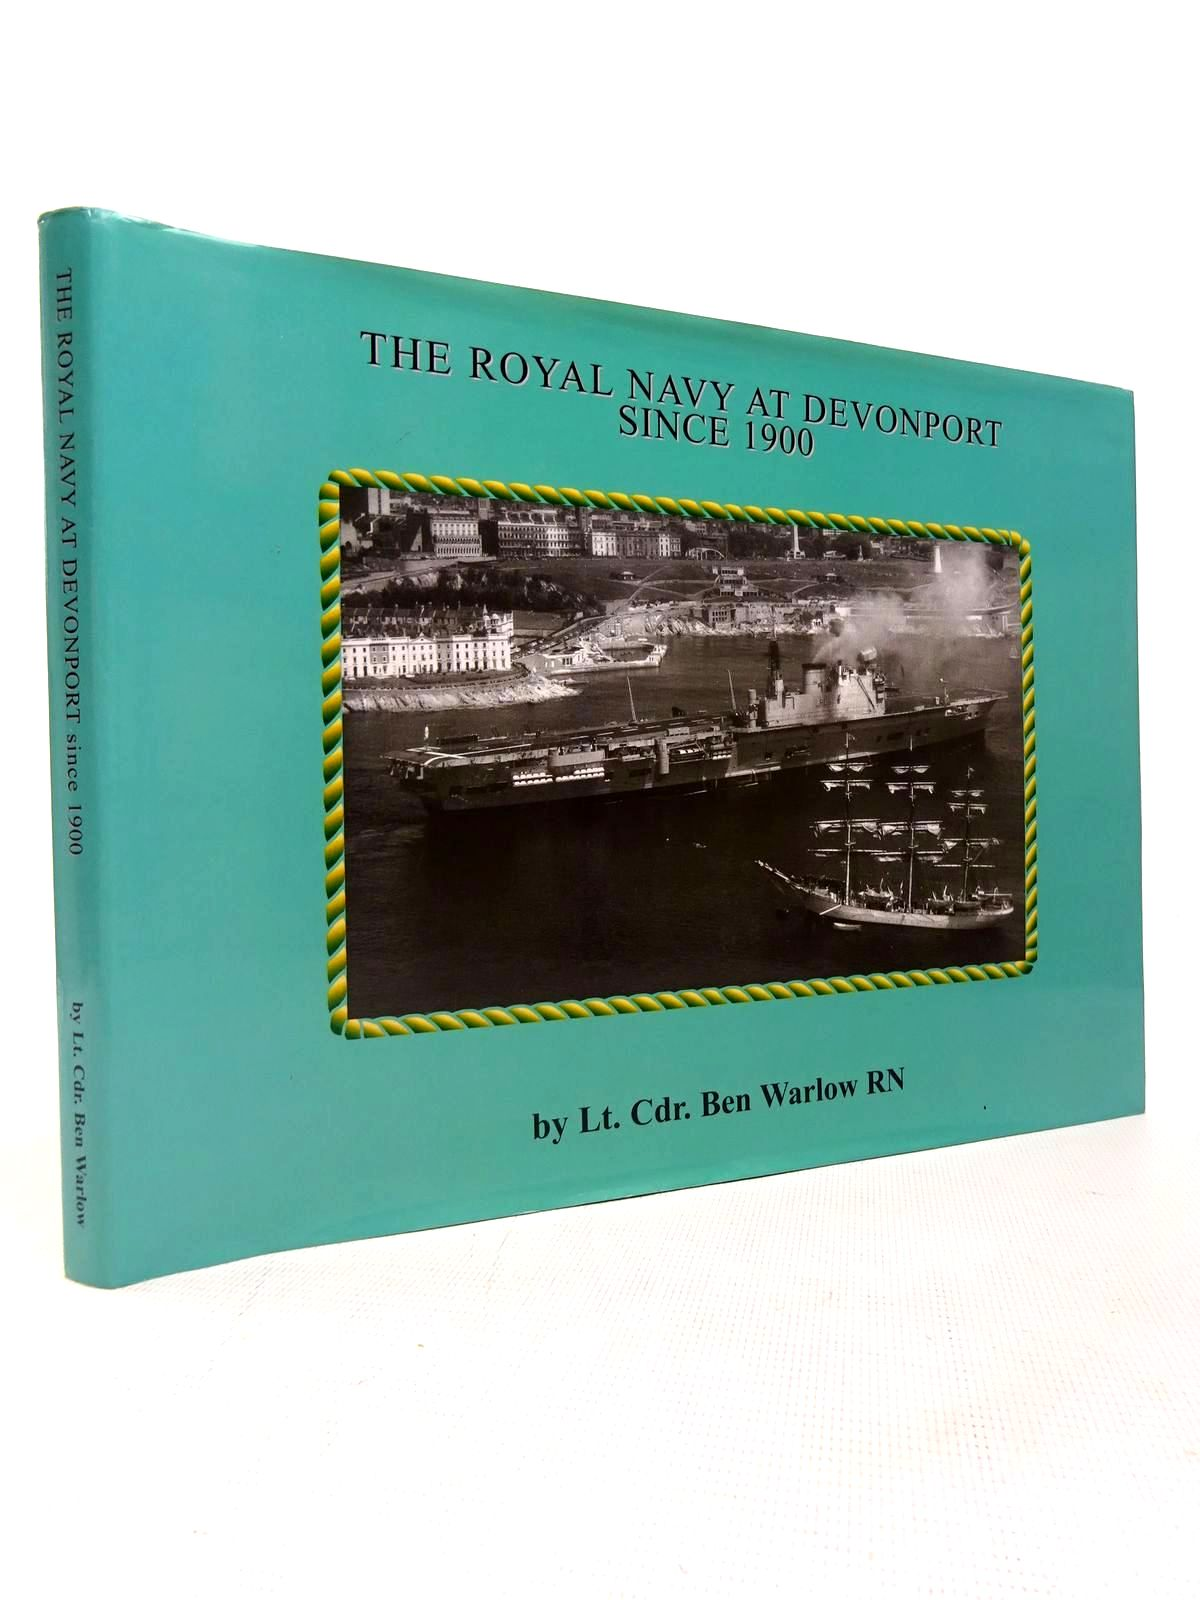 Photo of THE ROYAL NAVY AT DEVONPORT SINCE 1900 written by Warlow, Ben published by Maritime Books (STOCK CODE: 1816722)  for sale by Stella & Rose's Books